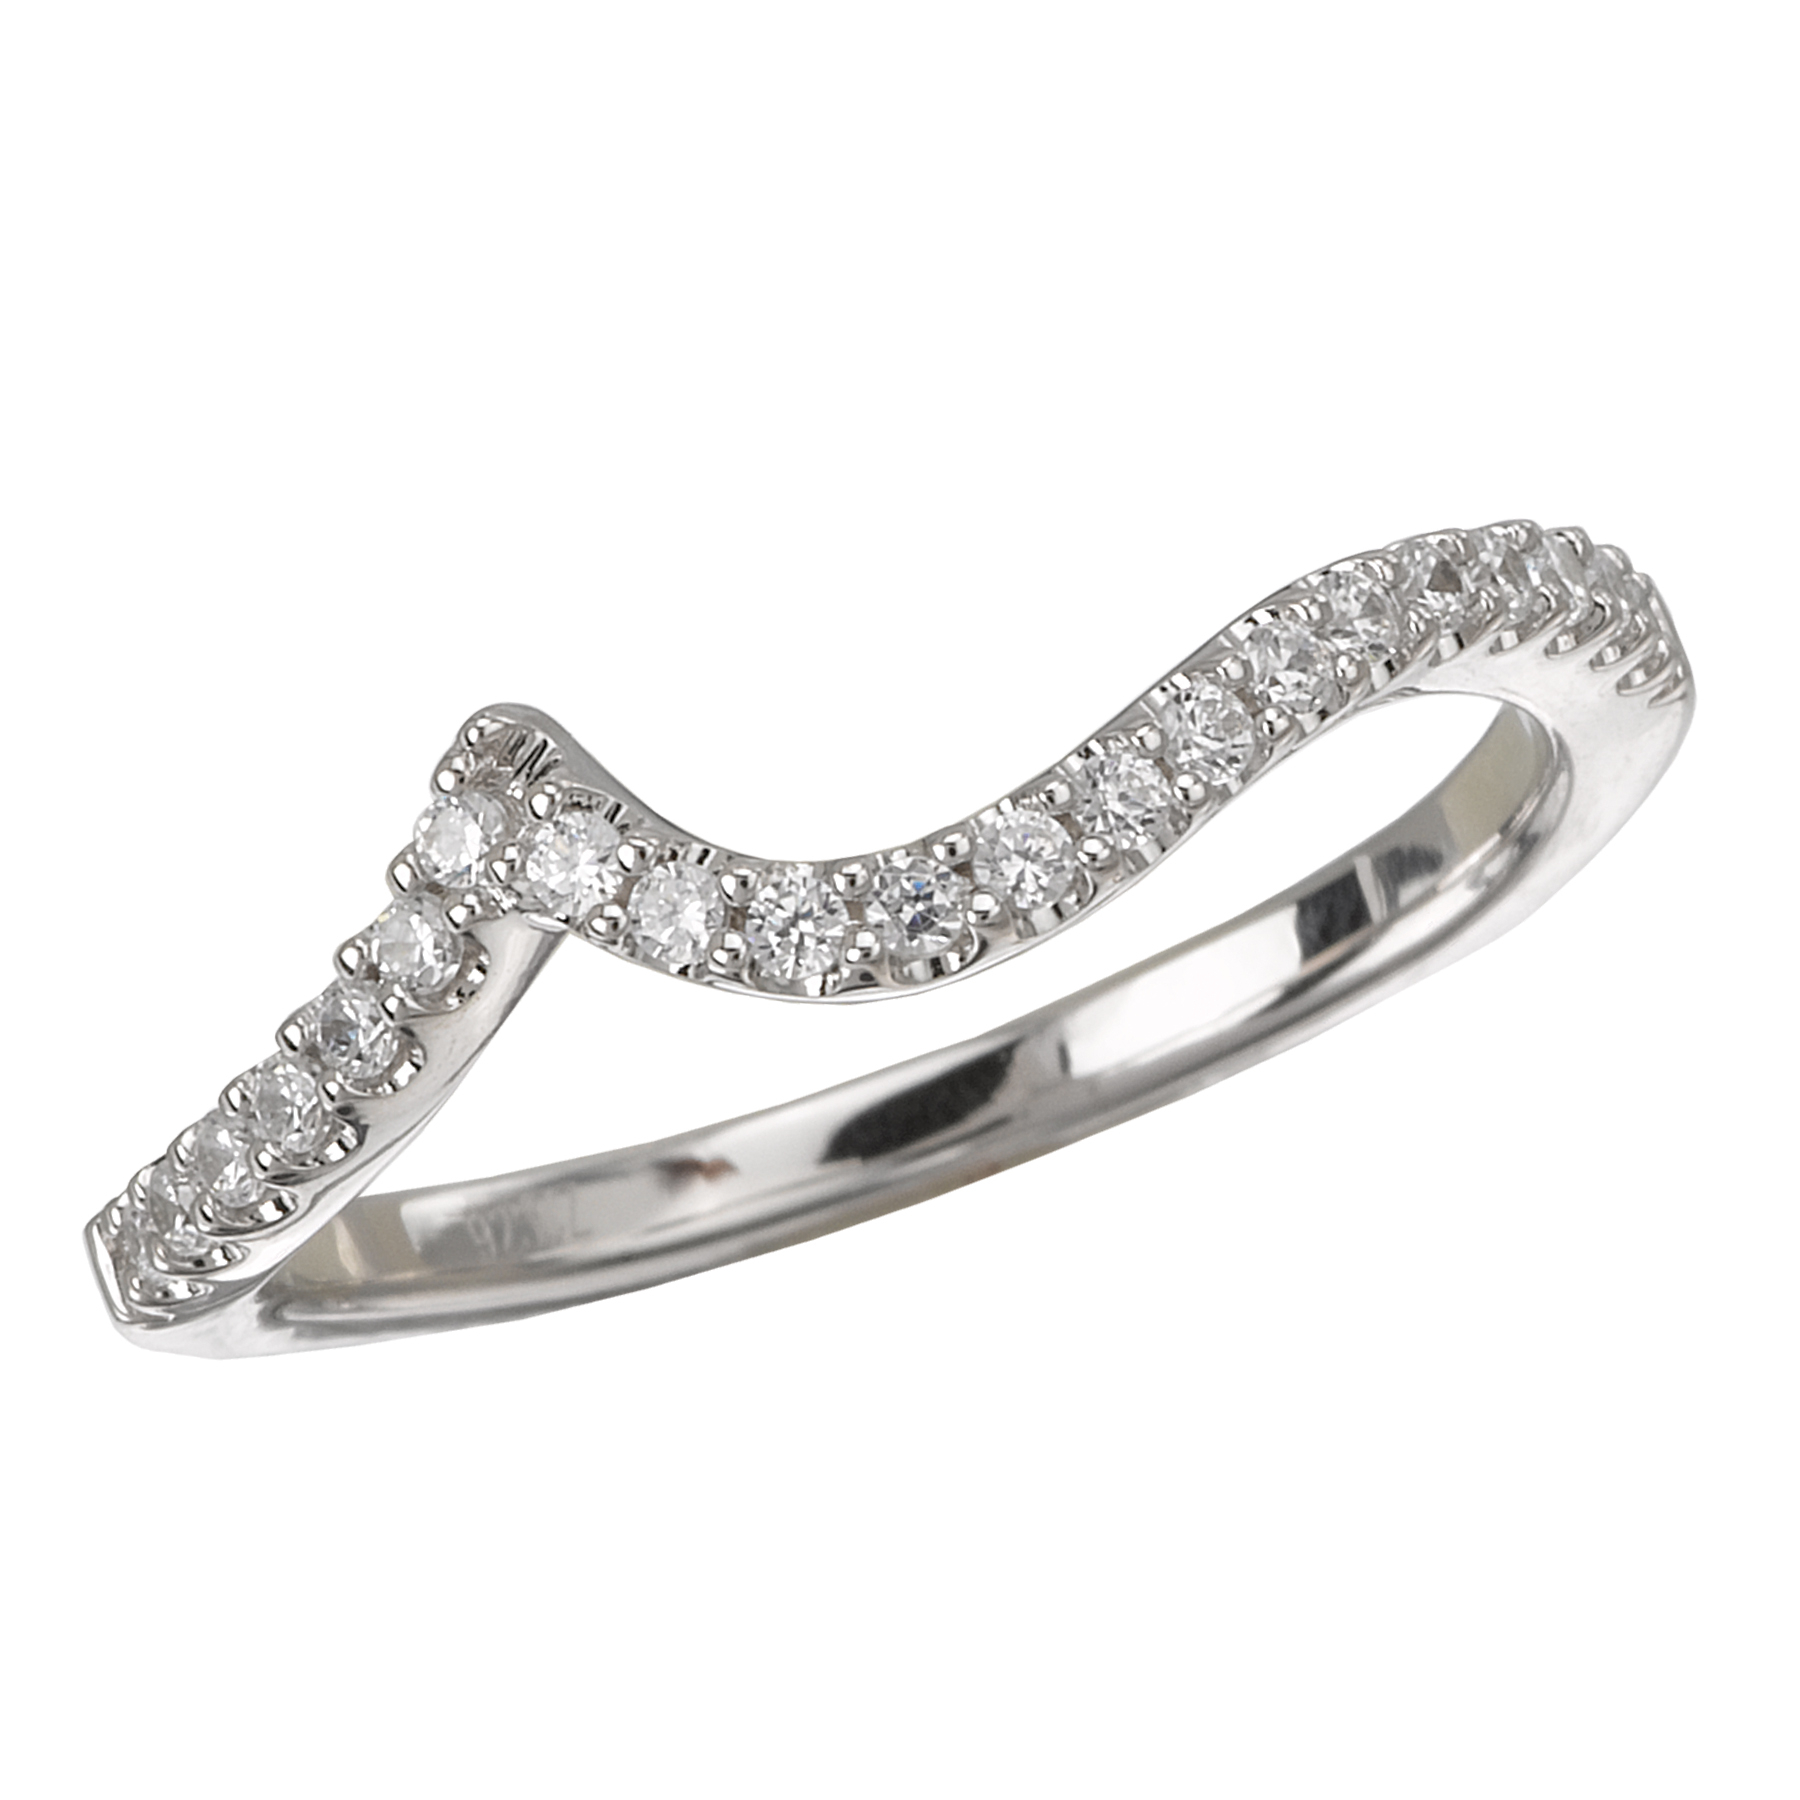 Romance Wedding Bands 117508-W product image